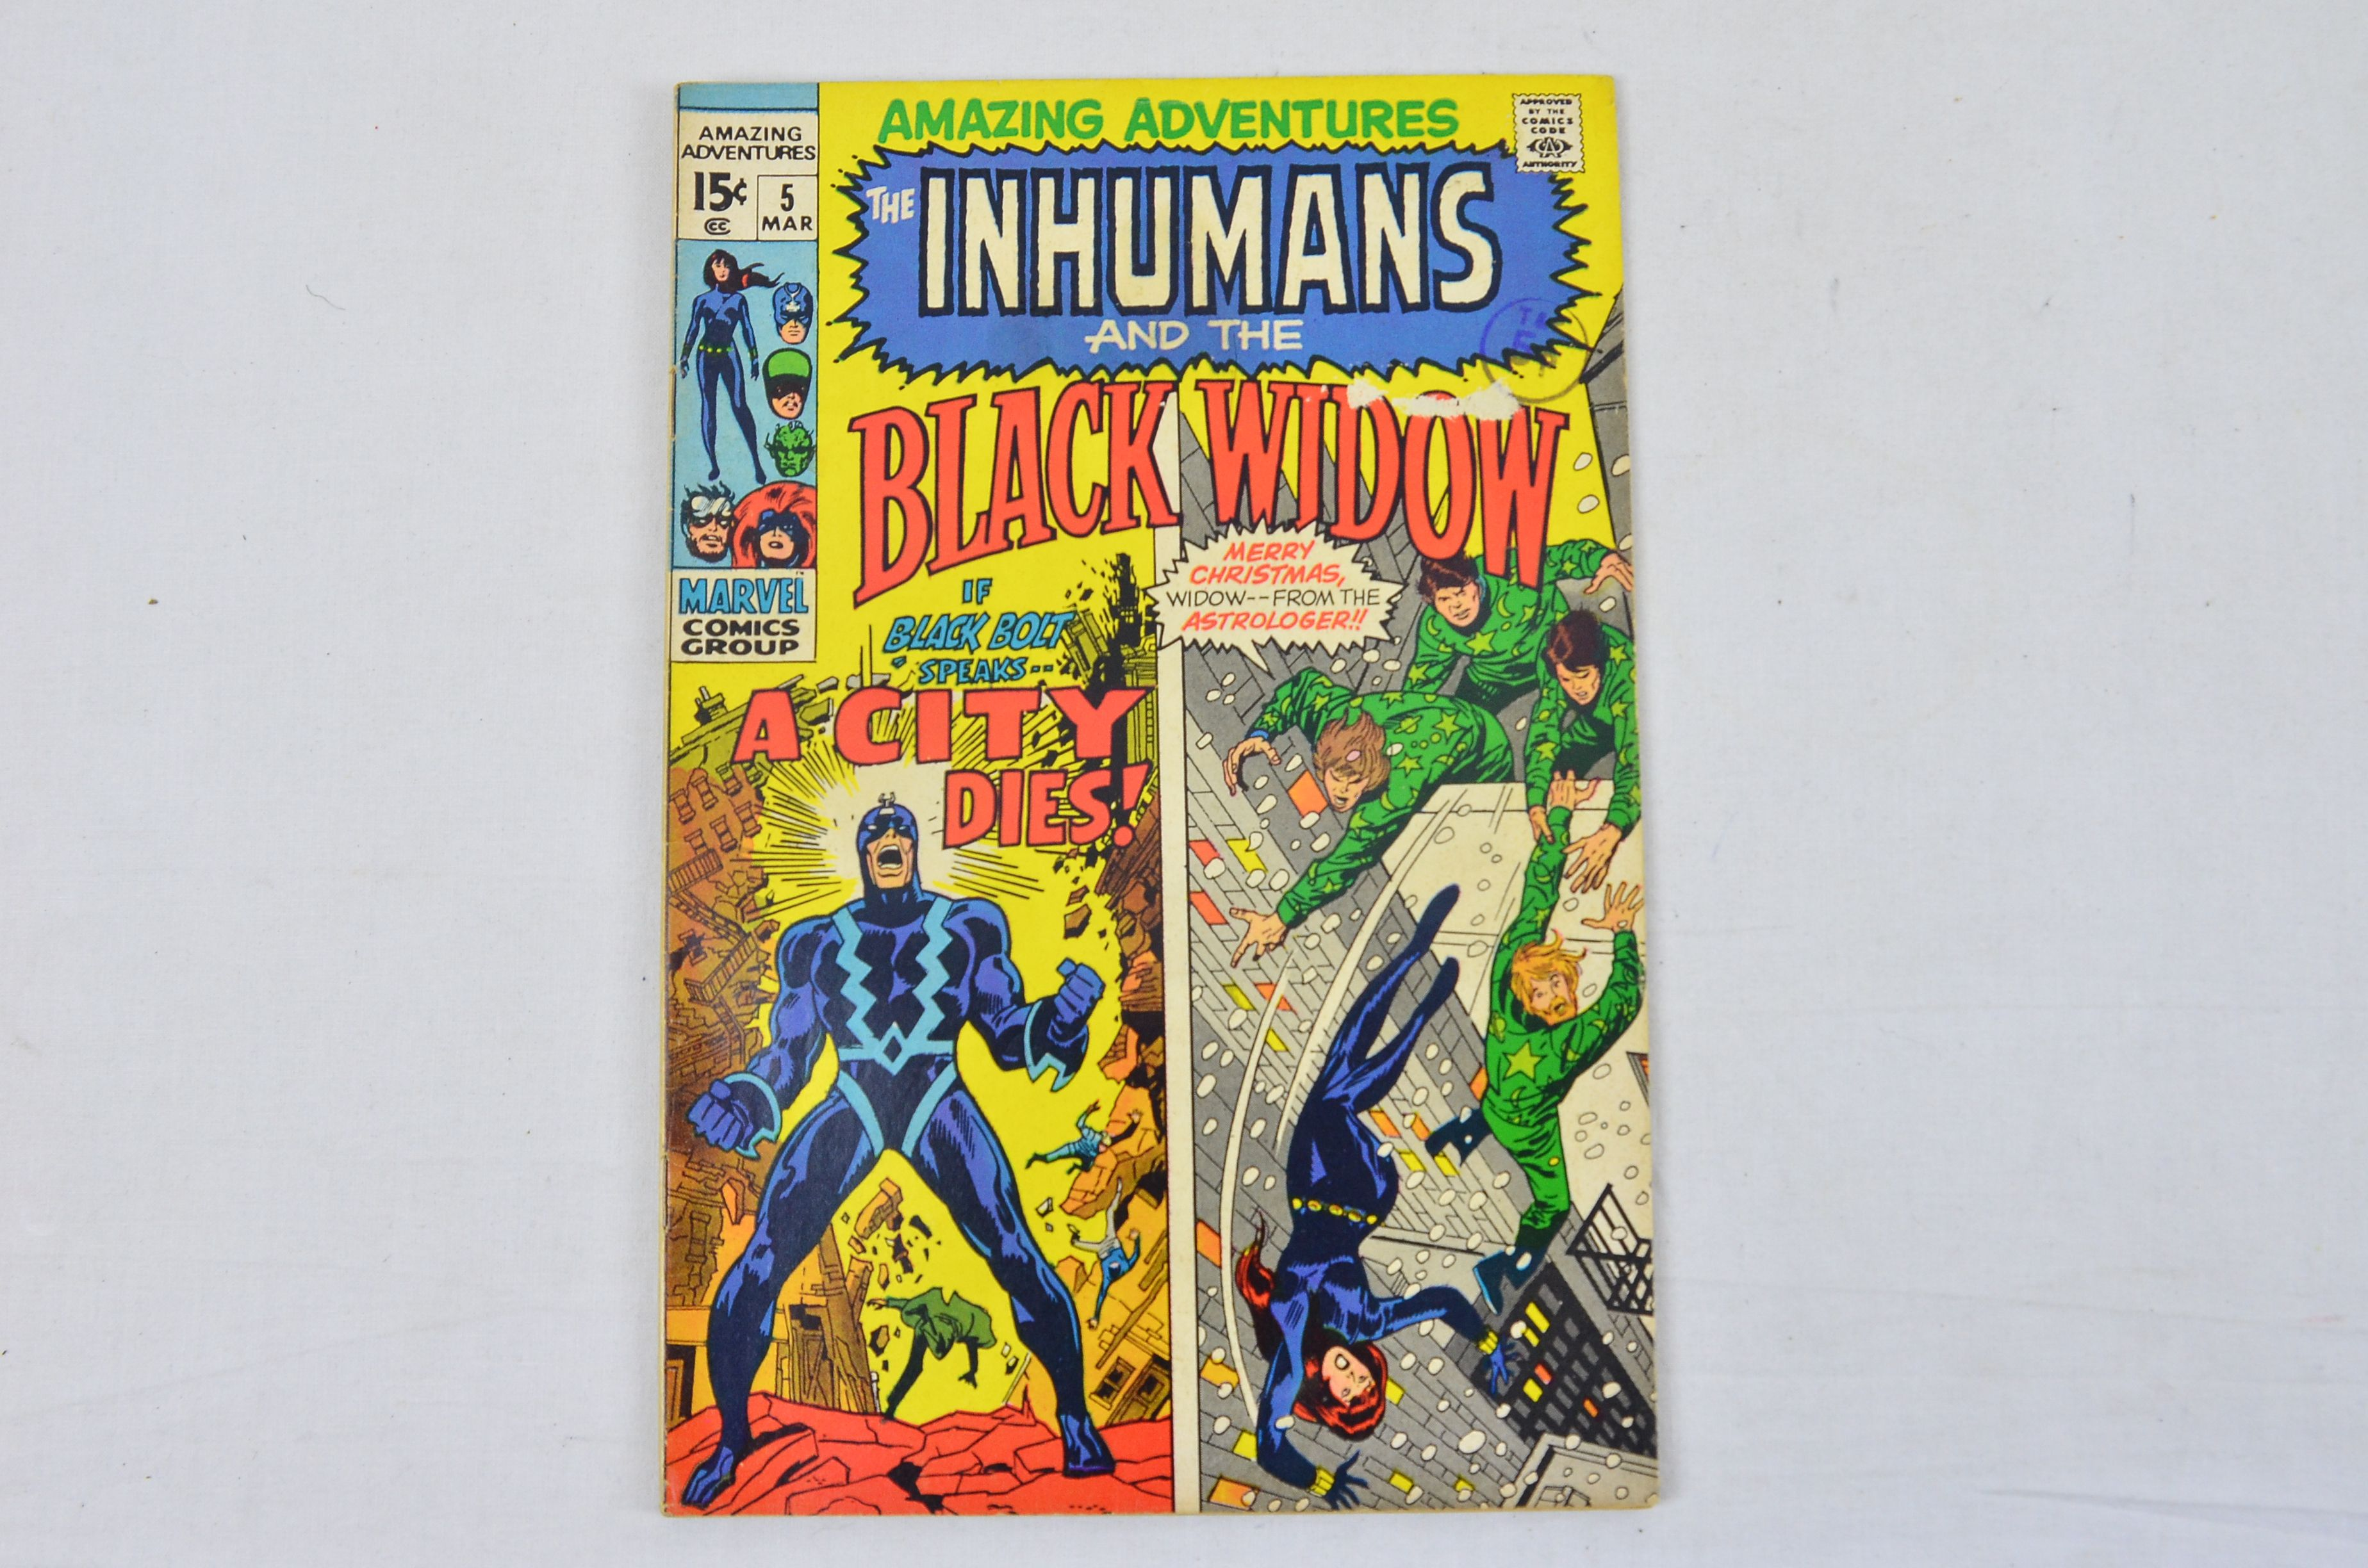 Vintage Marvel Comics Group The Inhumans And The Black Widow Collectable Comic 1